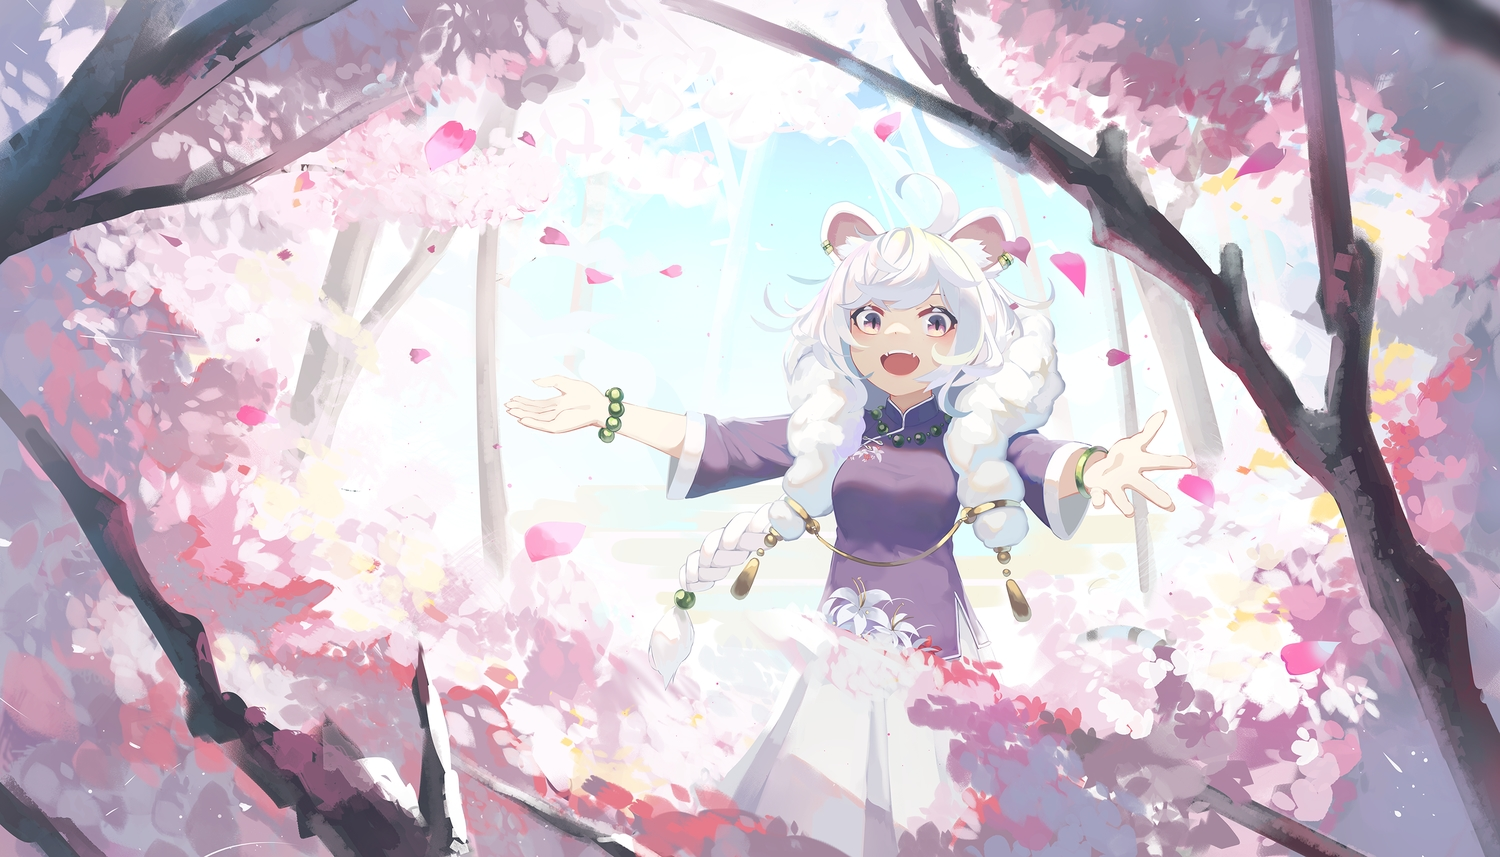 animal_ears braids cherry_blossoms chinese_clothes flowers long_hair natori_youkai original petals pink_eyes tree twintails white_hair wristwear